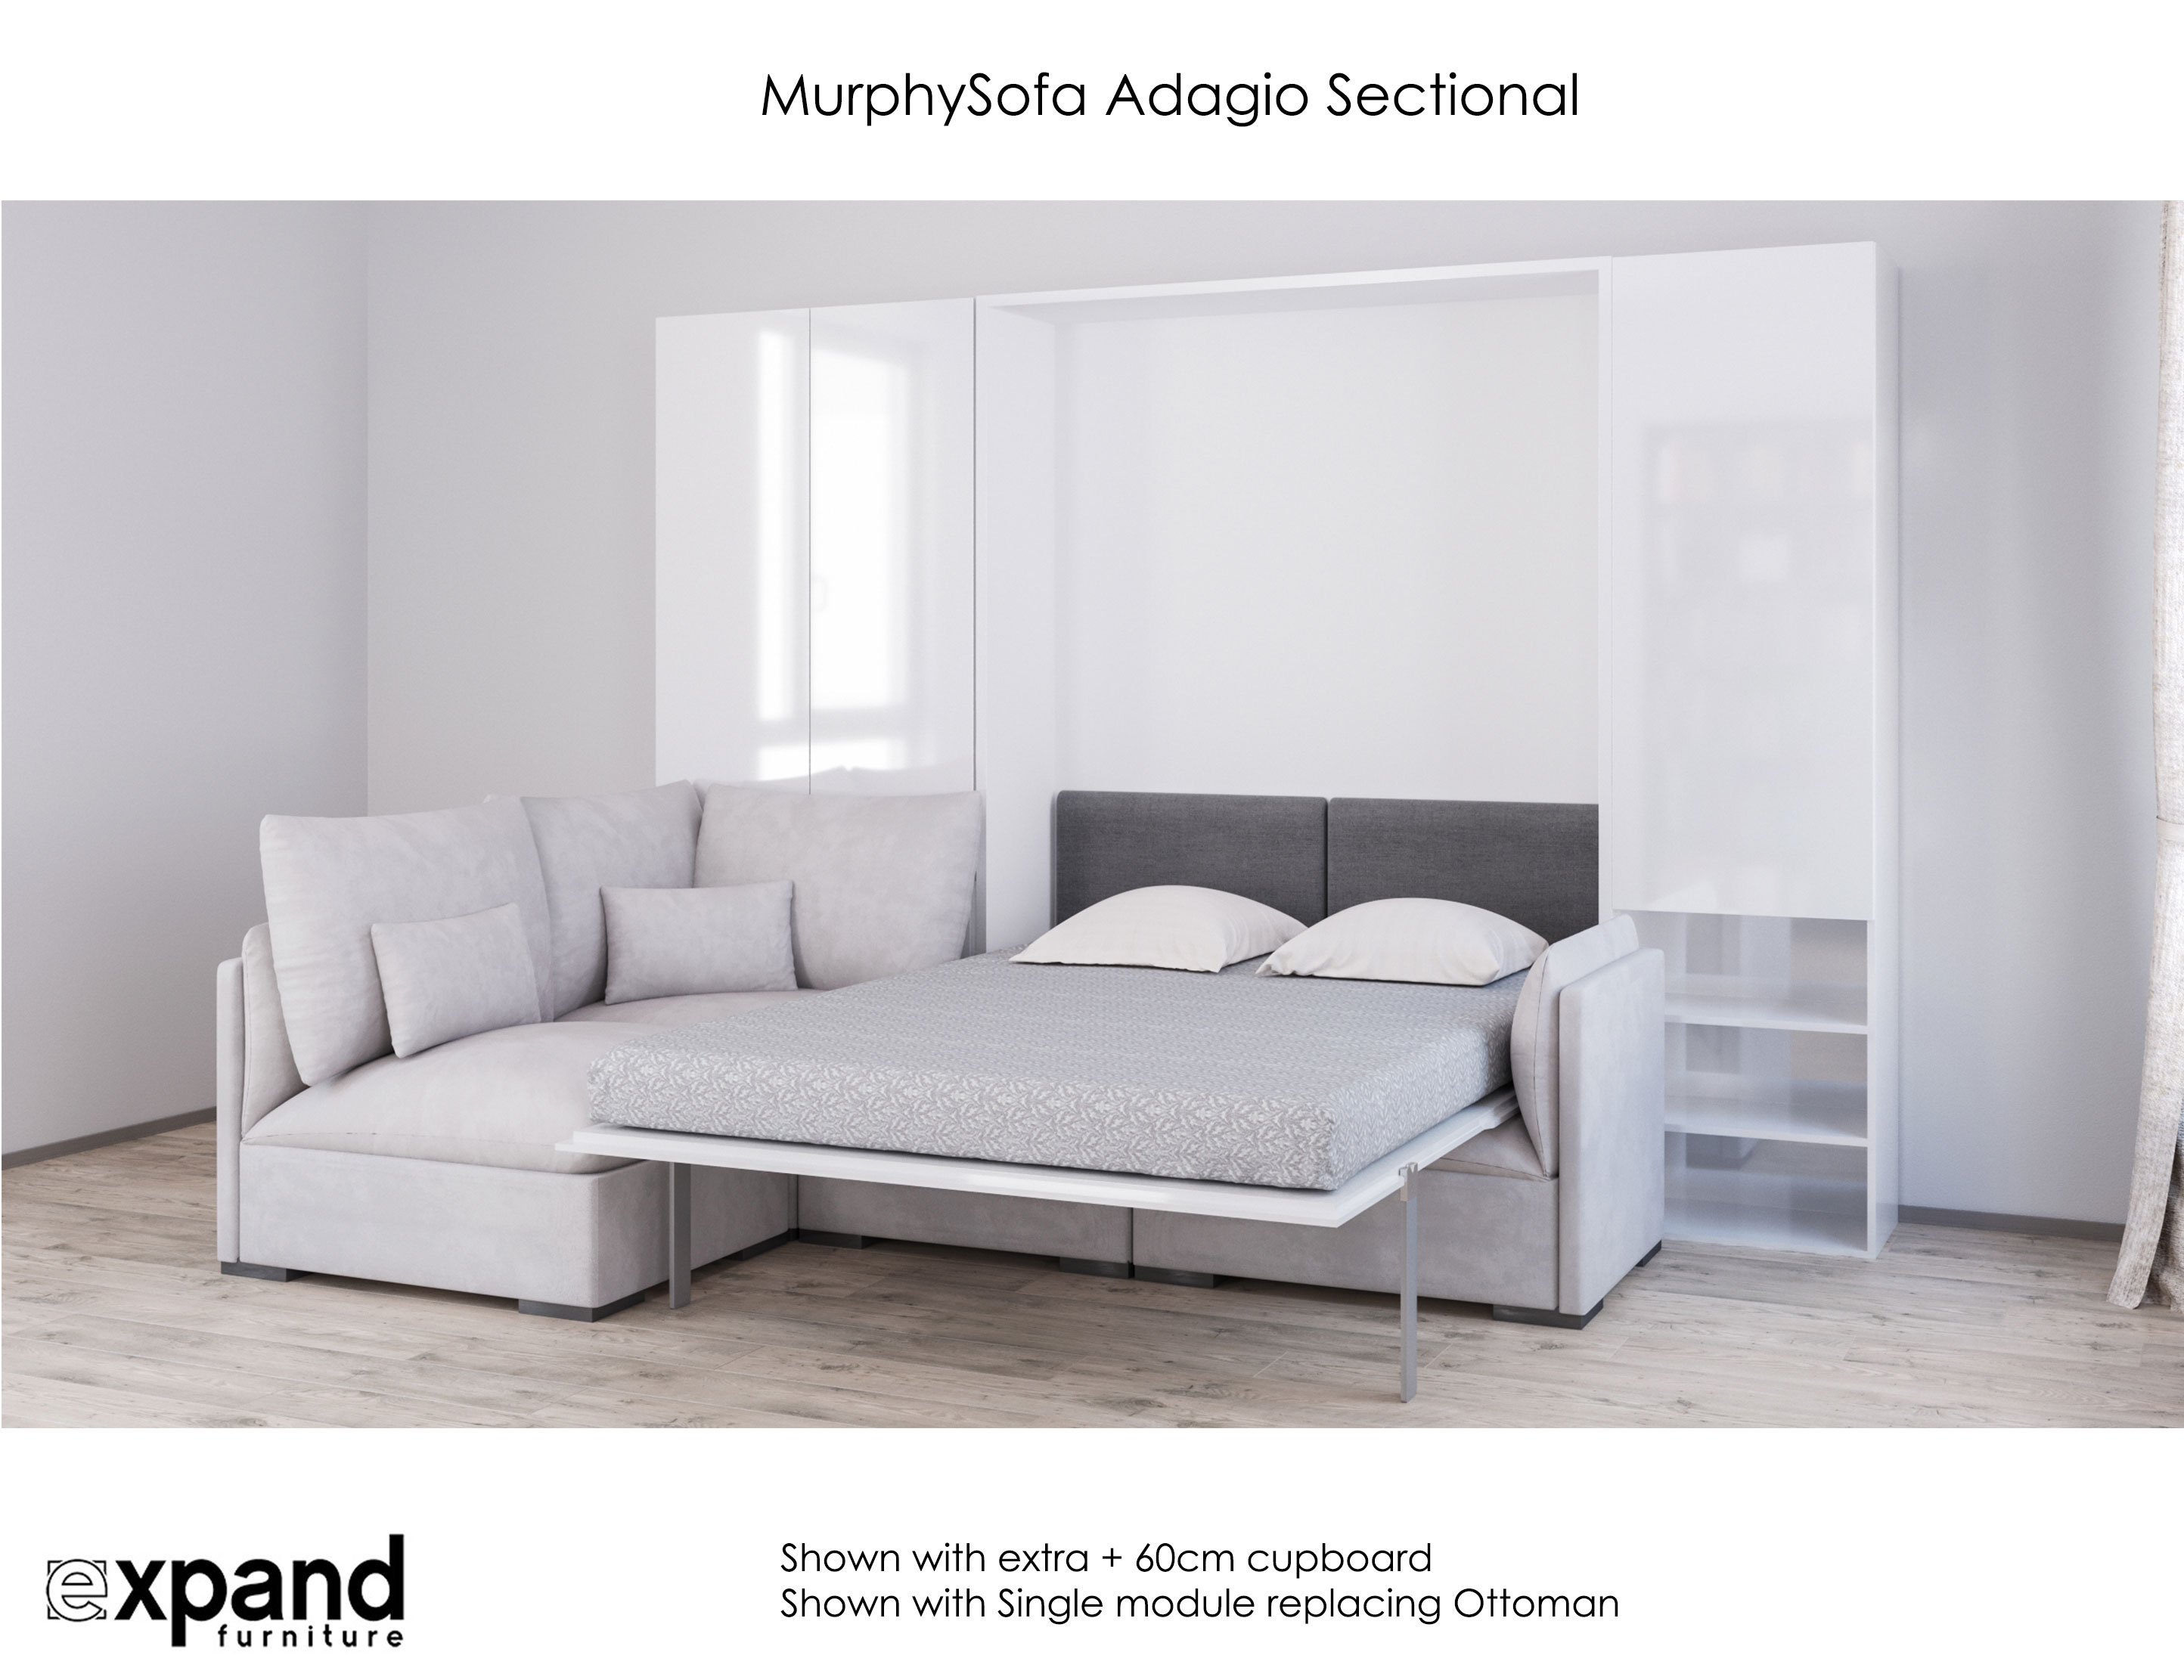 Murphysofa Adagio Queen Luxury Sectional Sofa Wall Bed